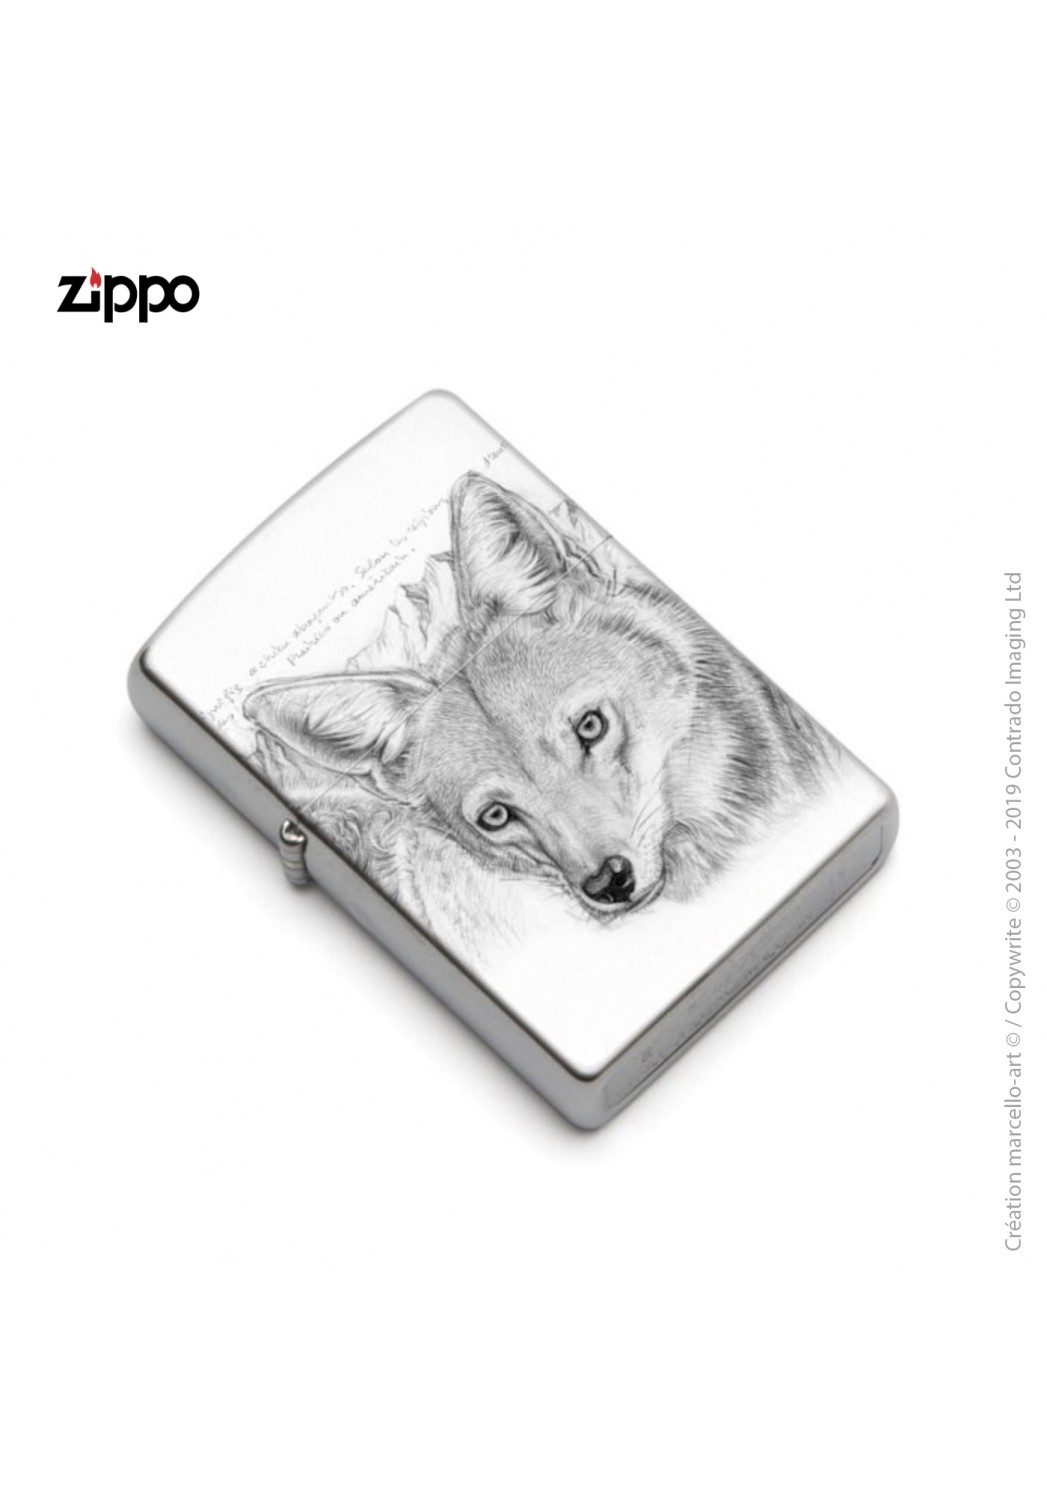 Marcello-art: Decoration accessoiries Zippo 391 coyote